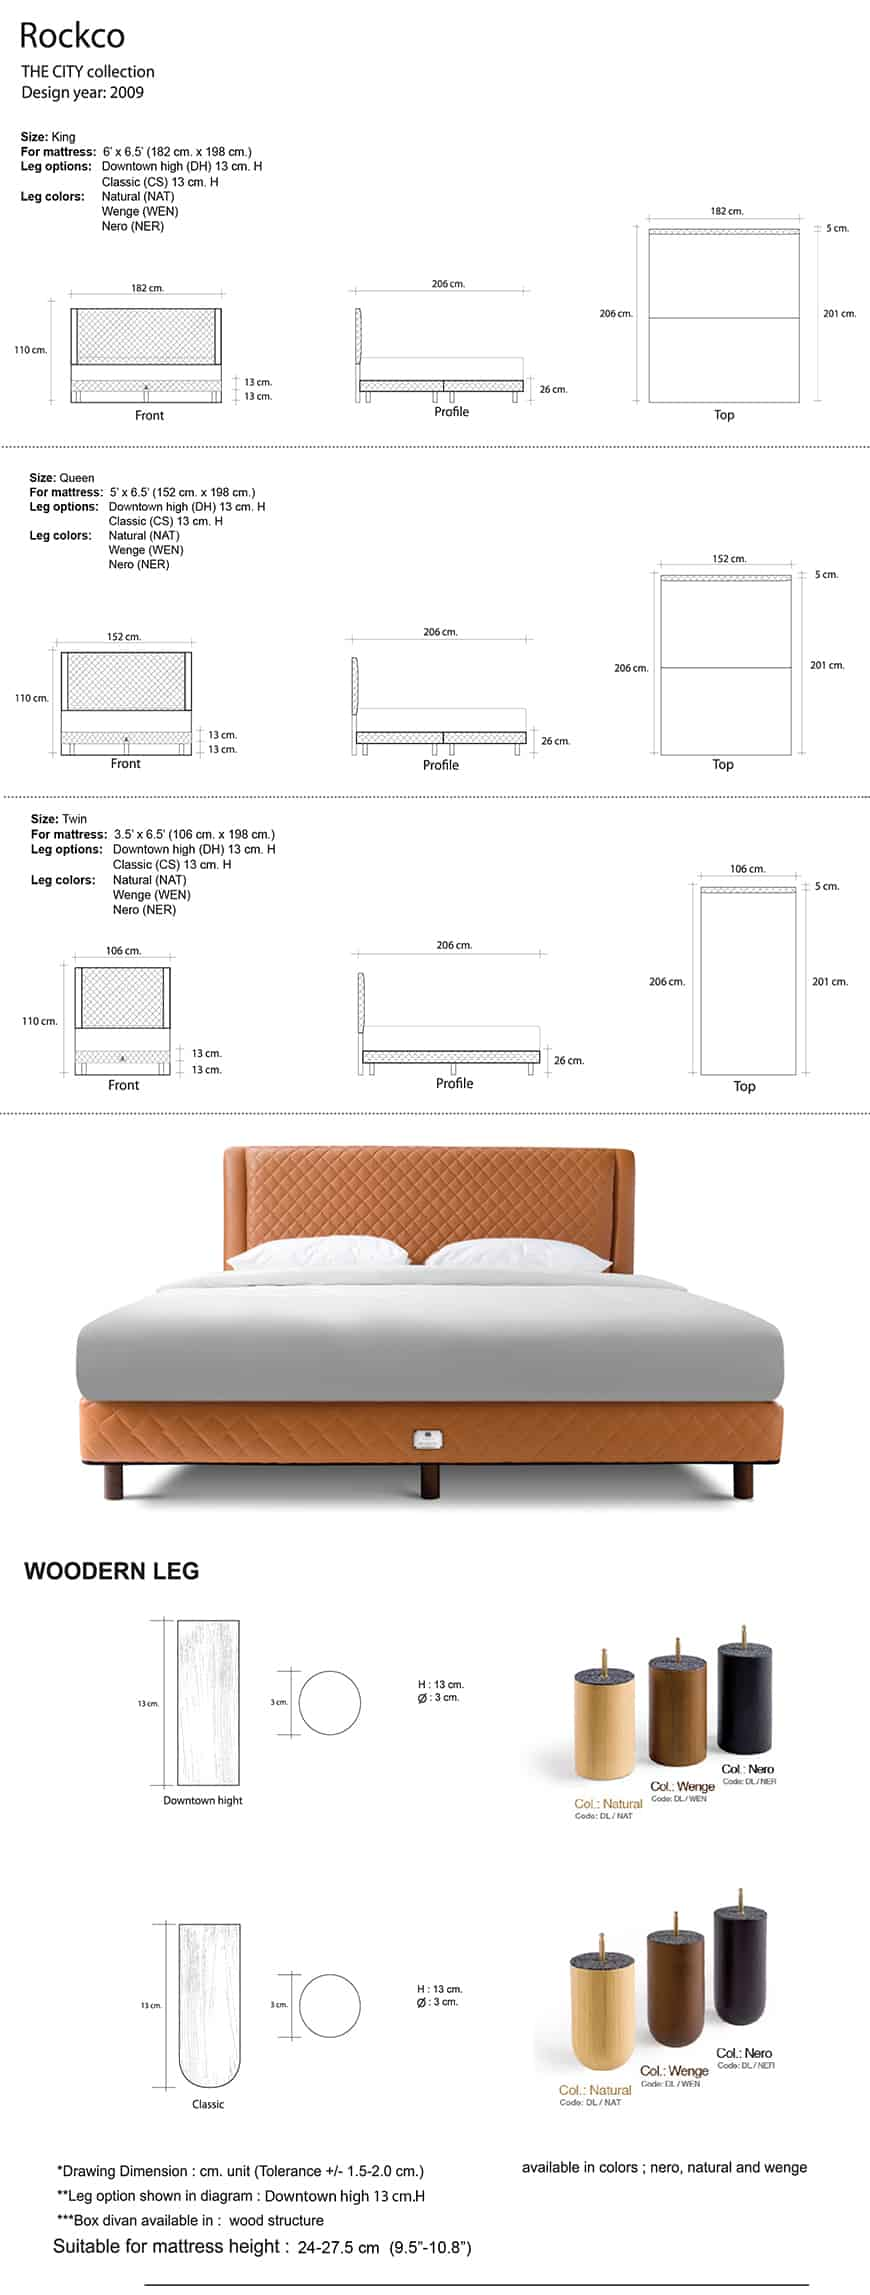 Lotus The City Bed | Collection - Rockco 15